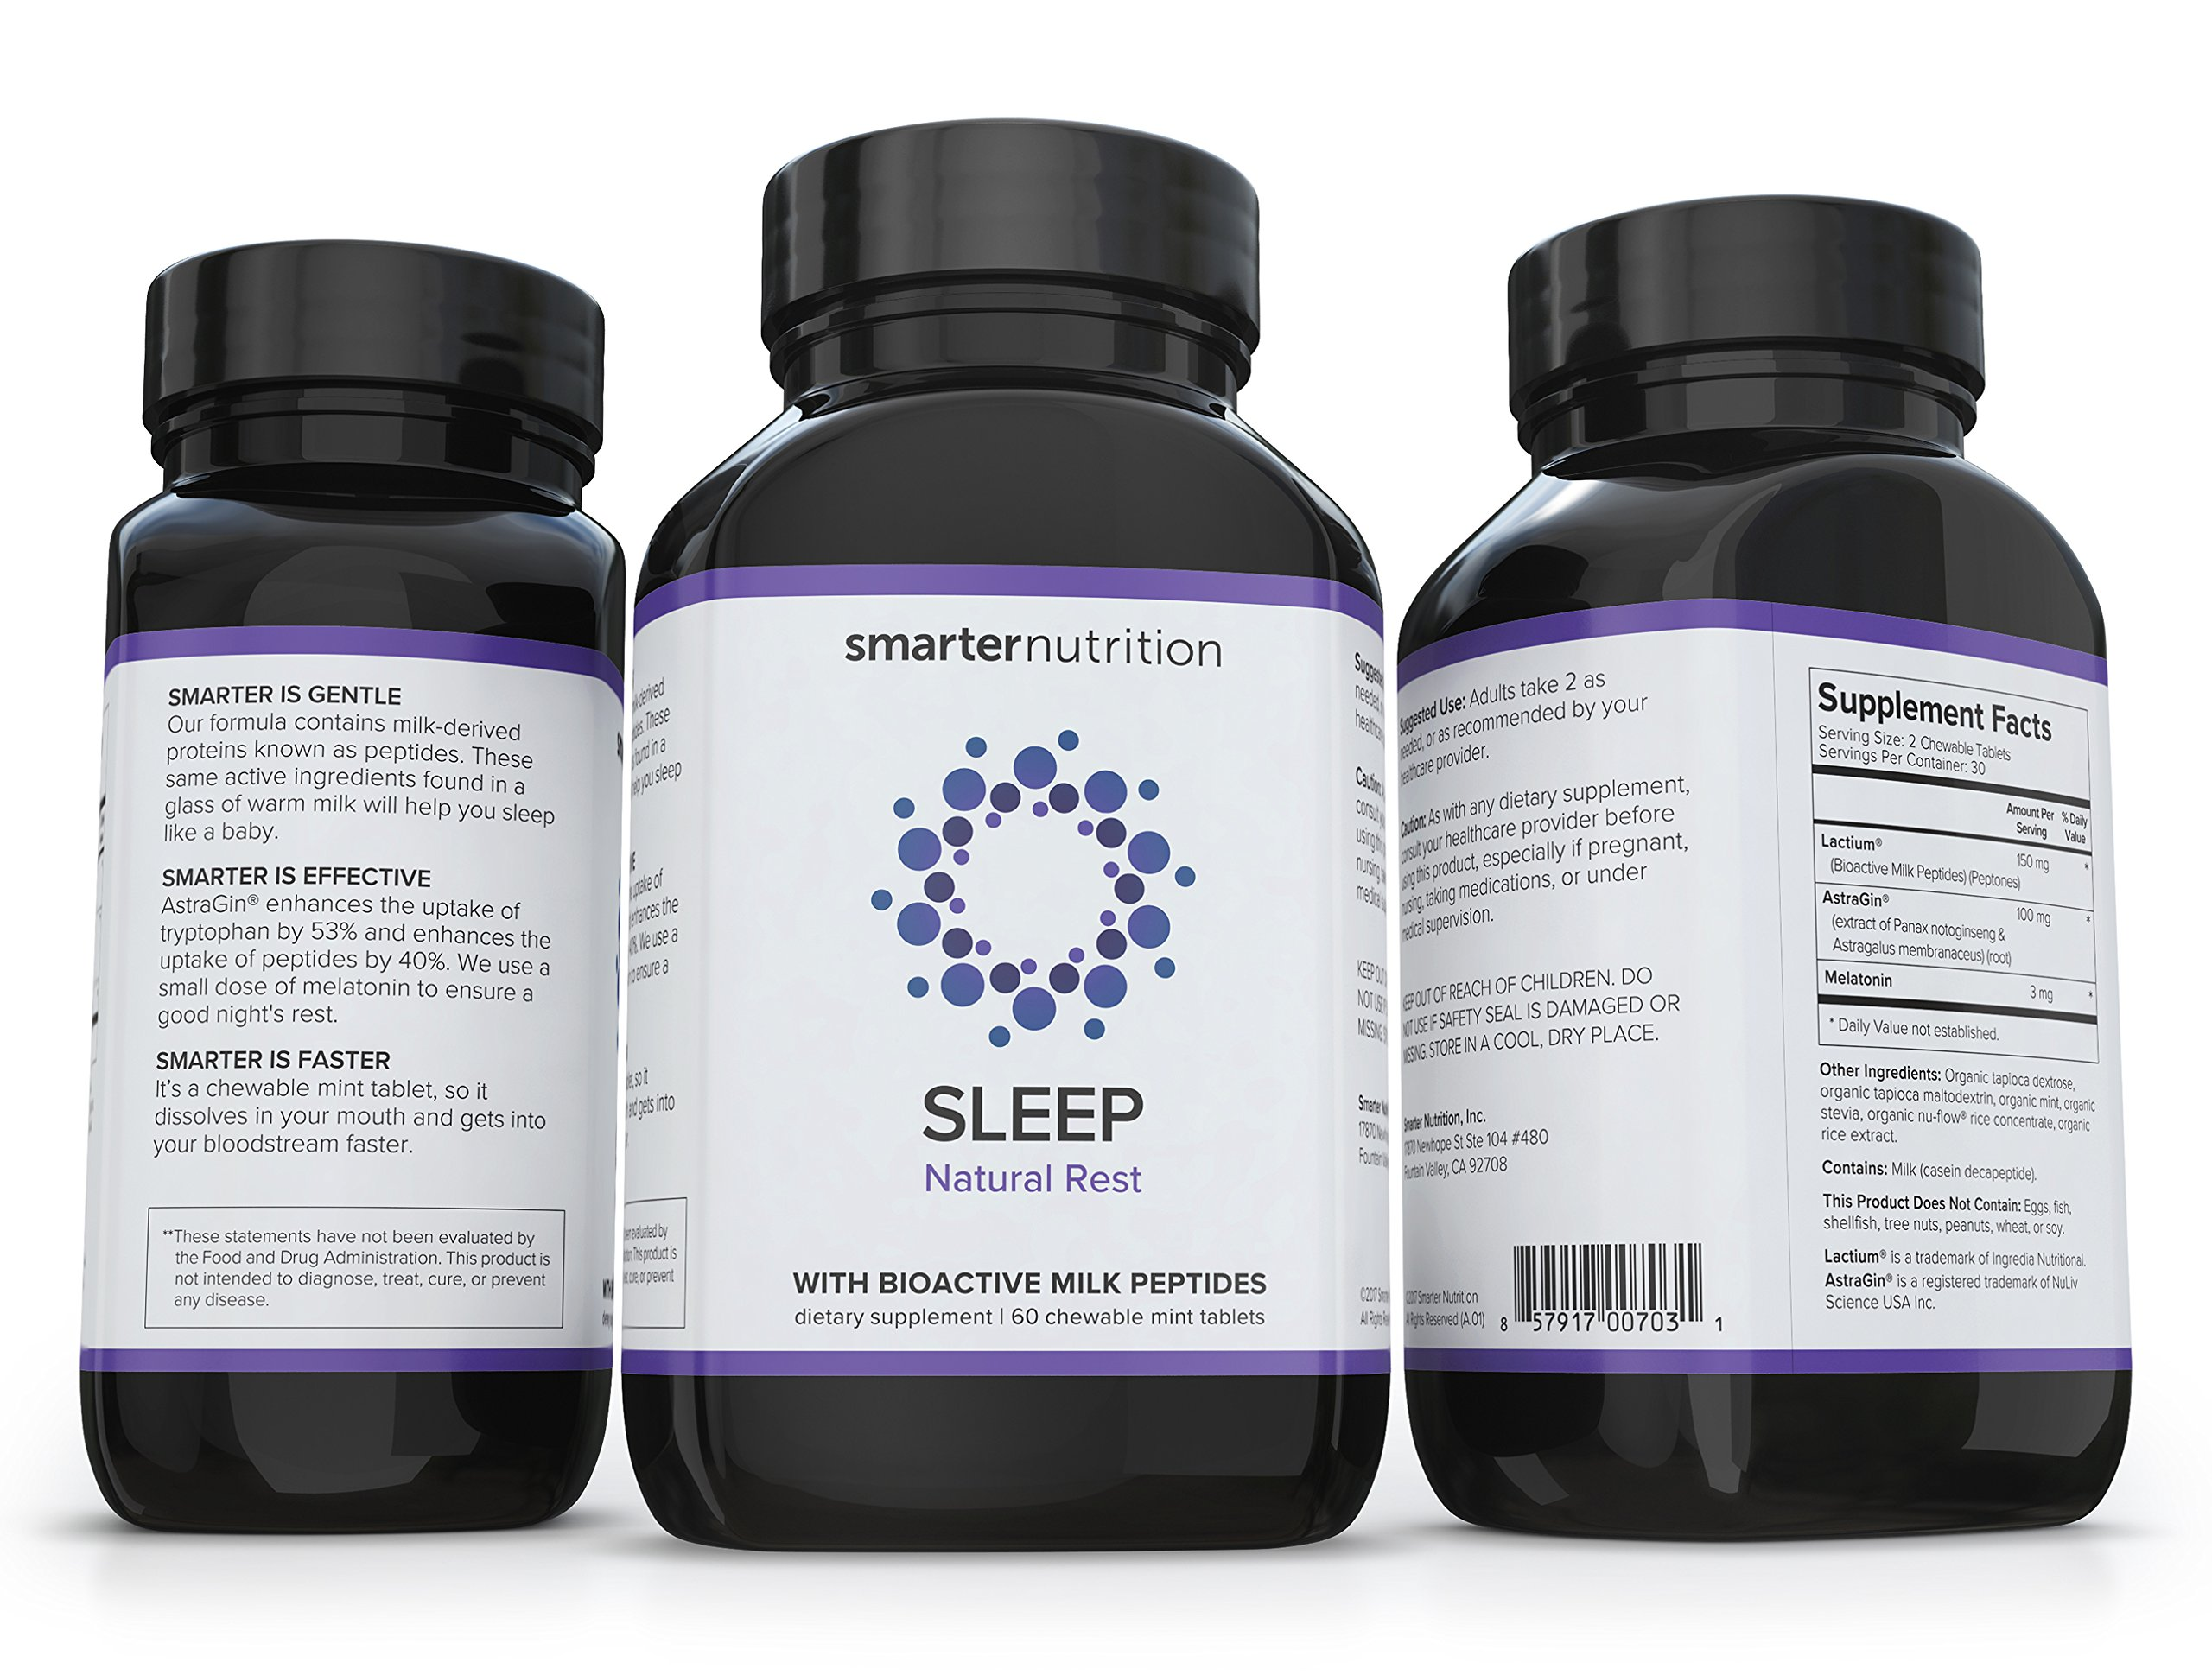 Smarter Sleep, Nighttime Sleep Aid with Bioactive Milk Peptides, 60 Chewable Mint Tablets (1 Month Supply) (1) by Smarter Nutrition (Image #5)